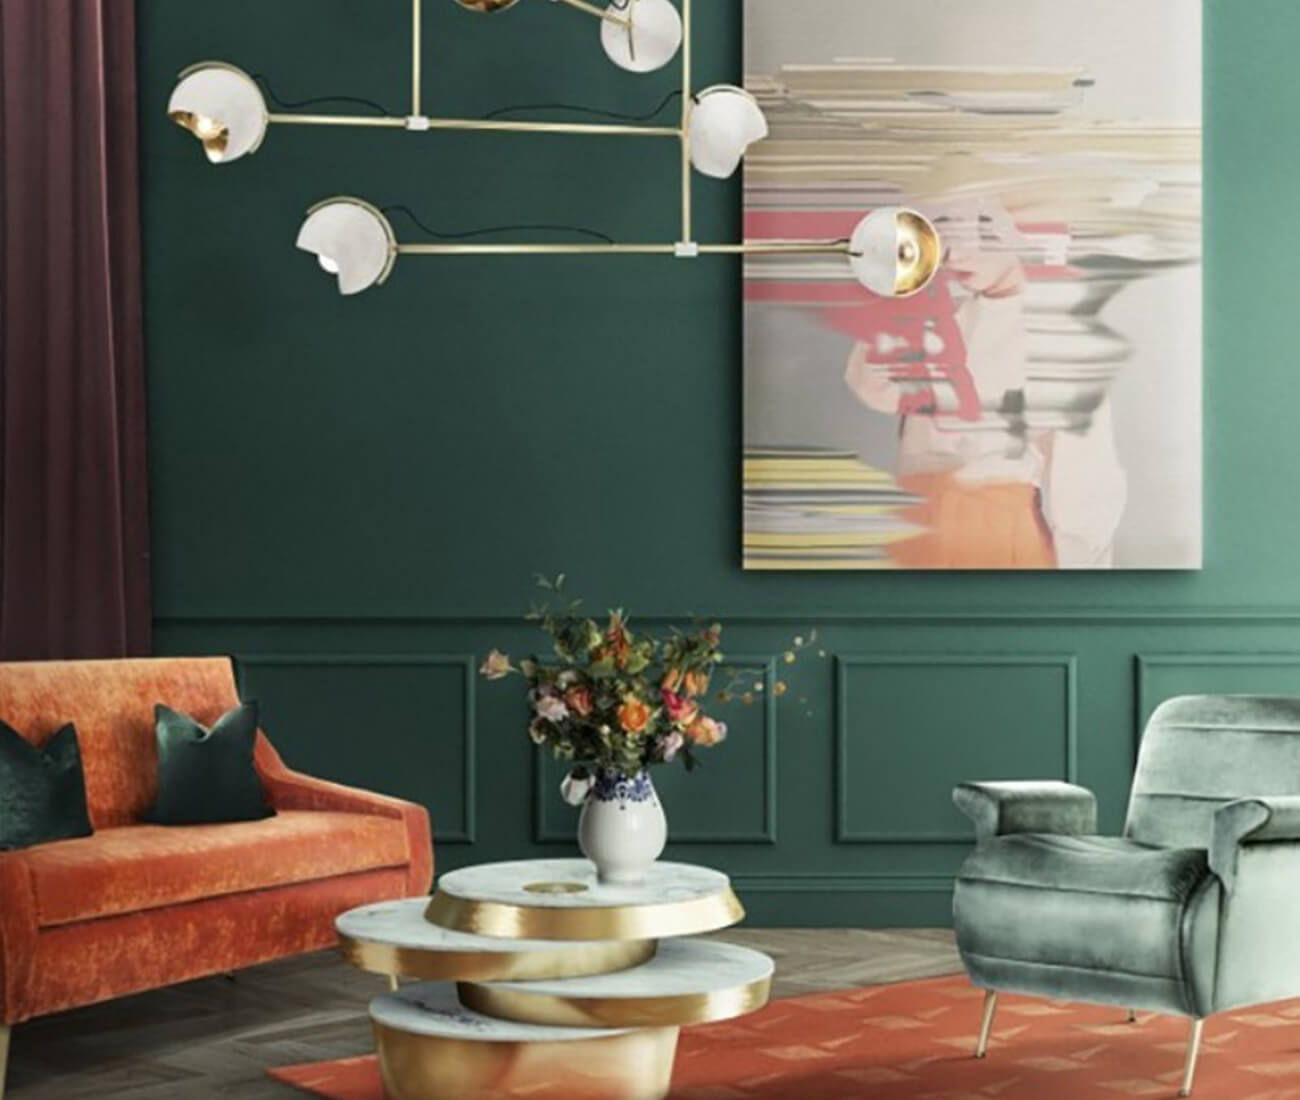 Interior Design Trends 2019: The Hottest Interior Design Trends 2019